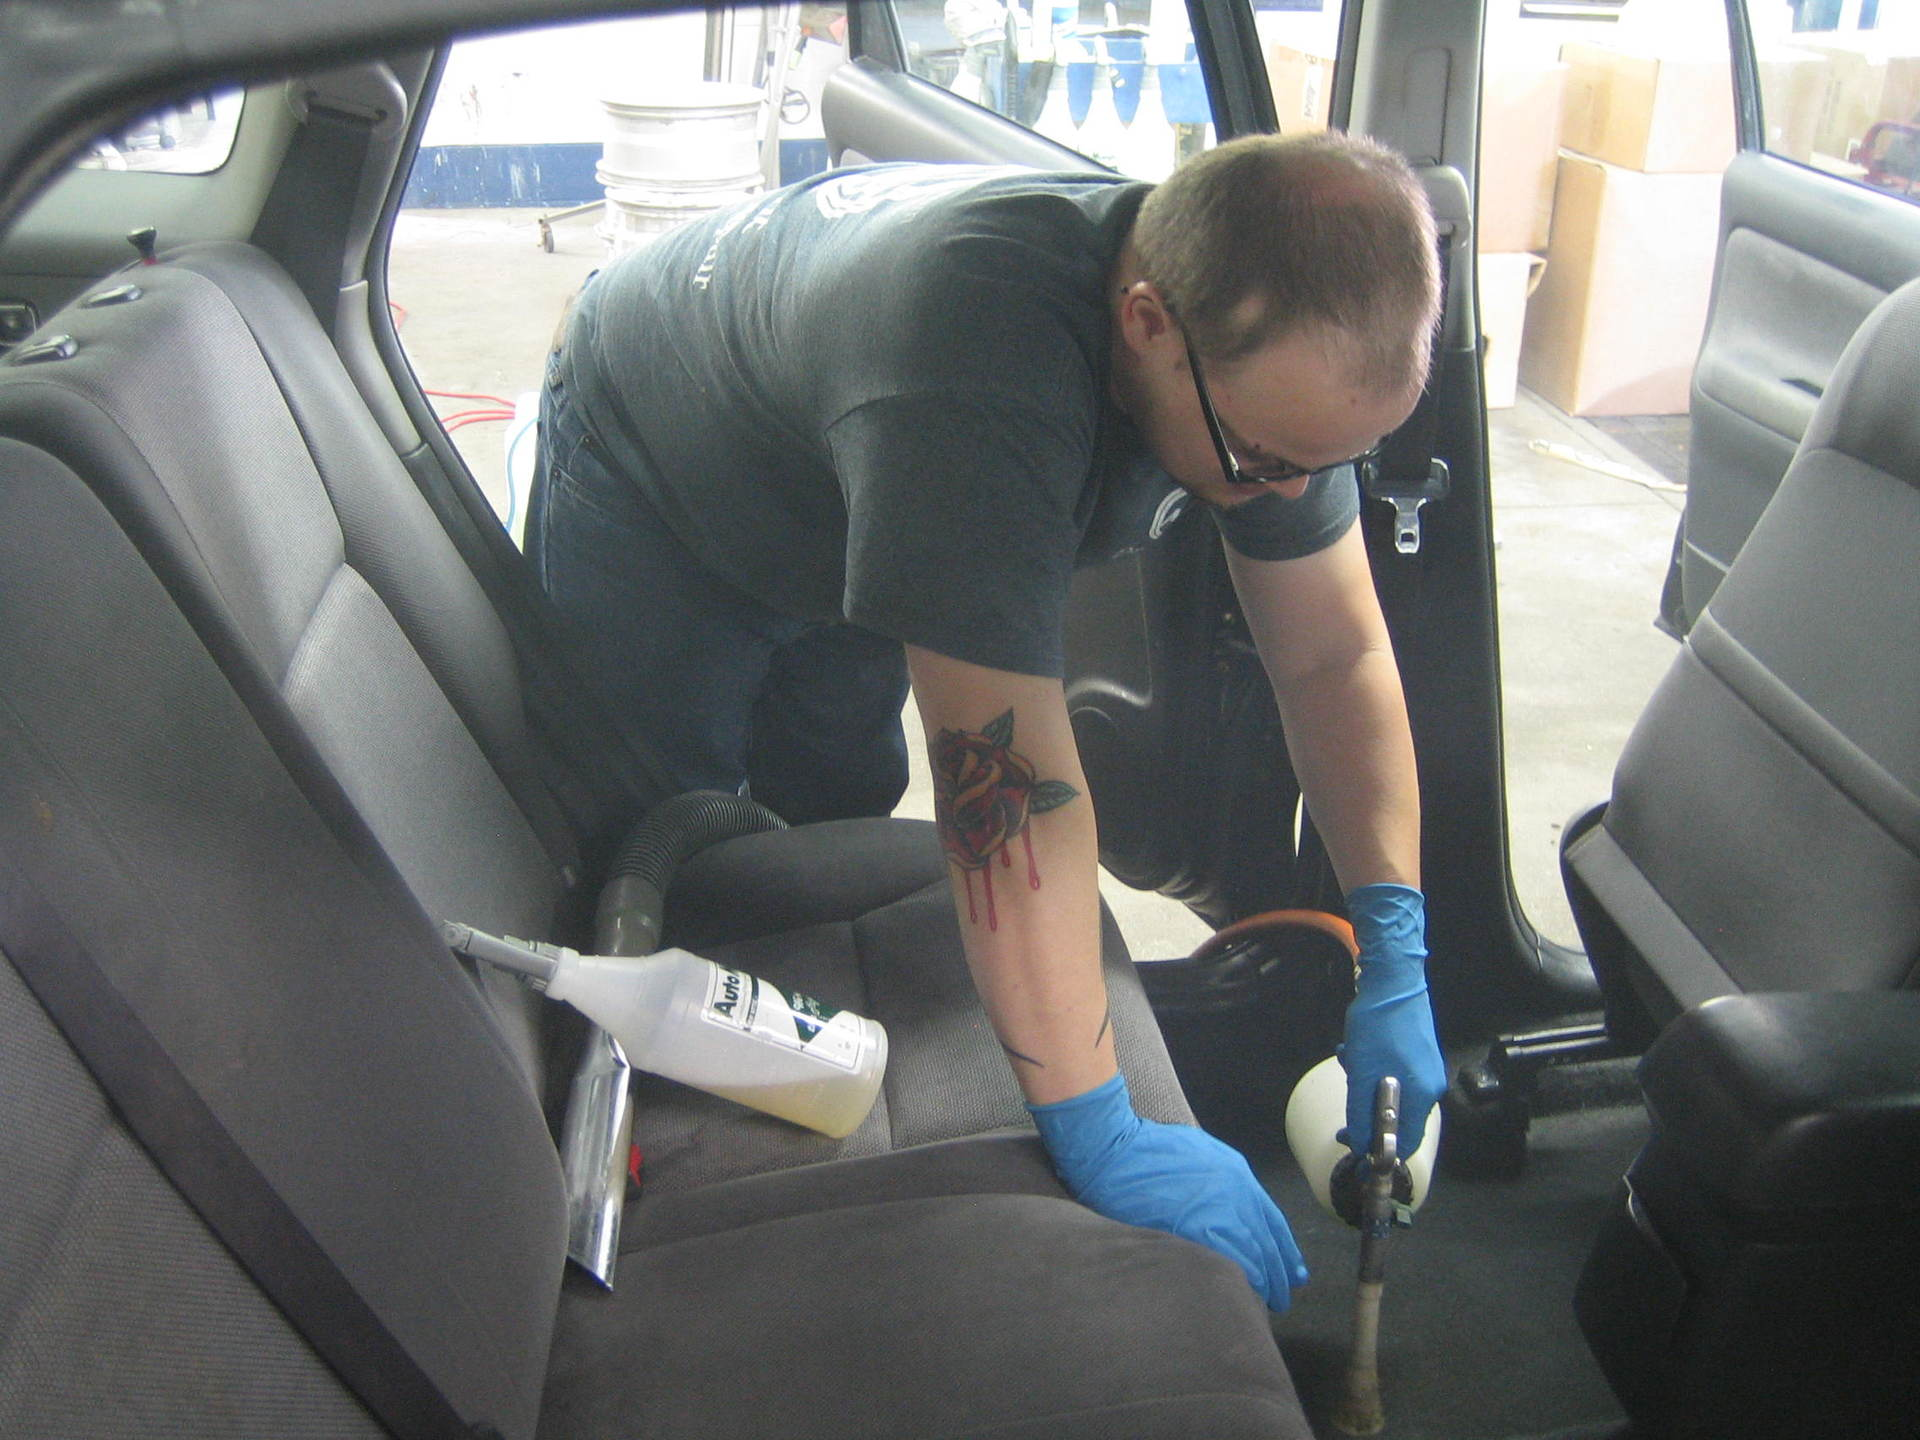 Modern car interior cleaning detailing in Lincoln, NE